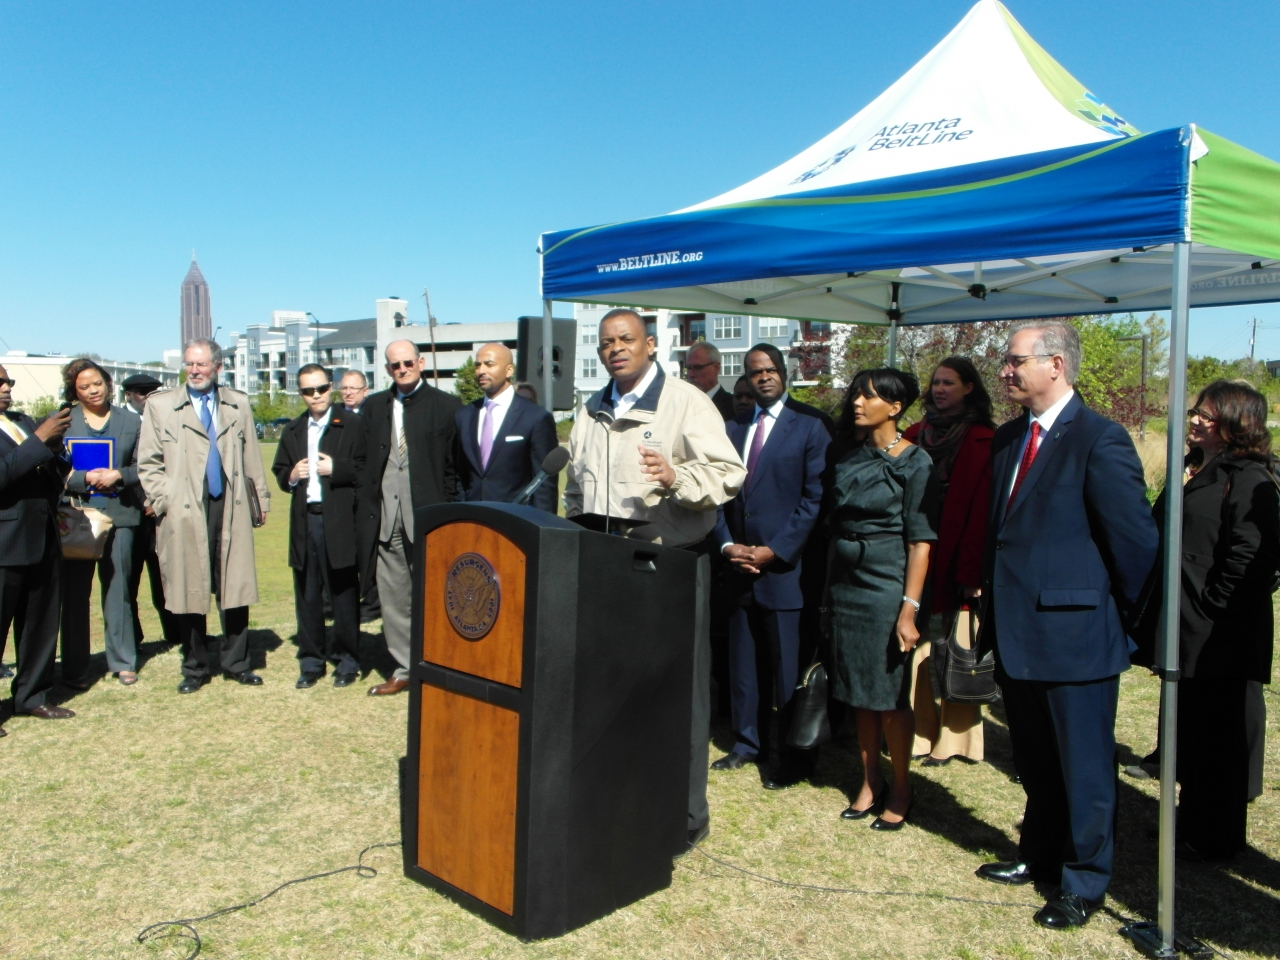 Photo of Secretary Foxx speaking at the Atlanta BeltLine press conference